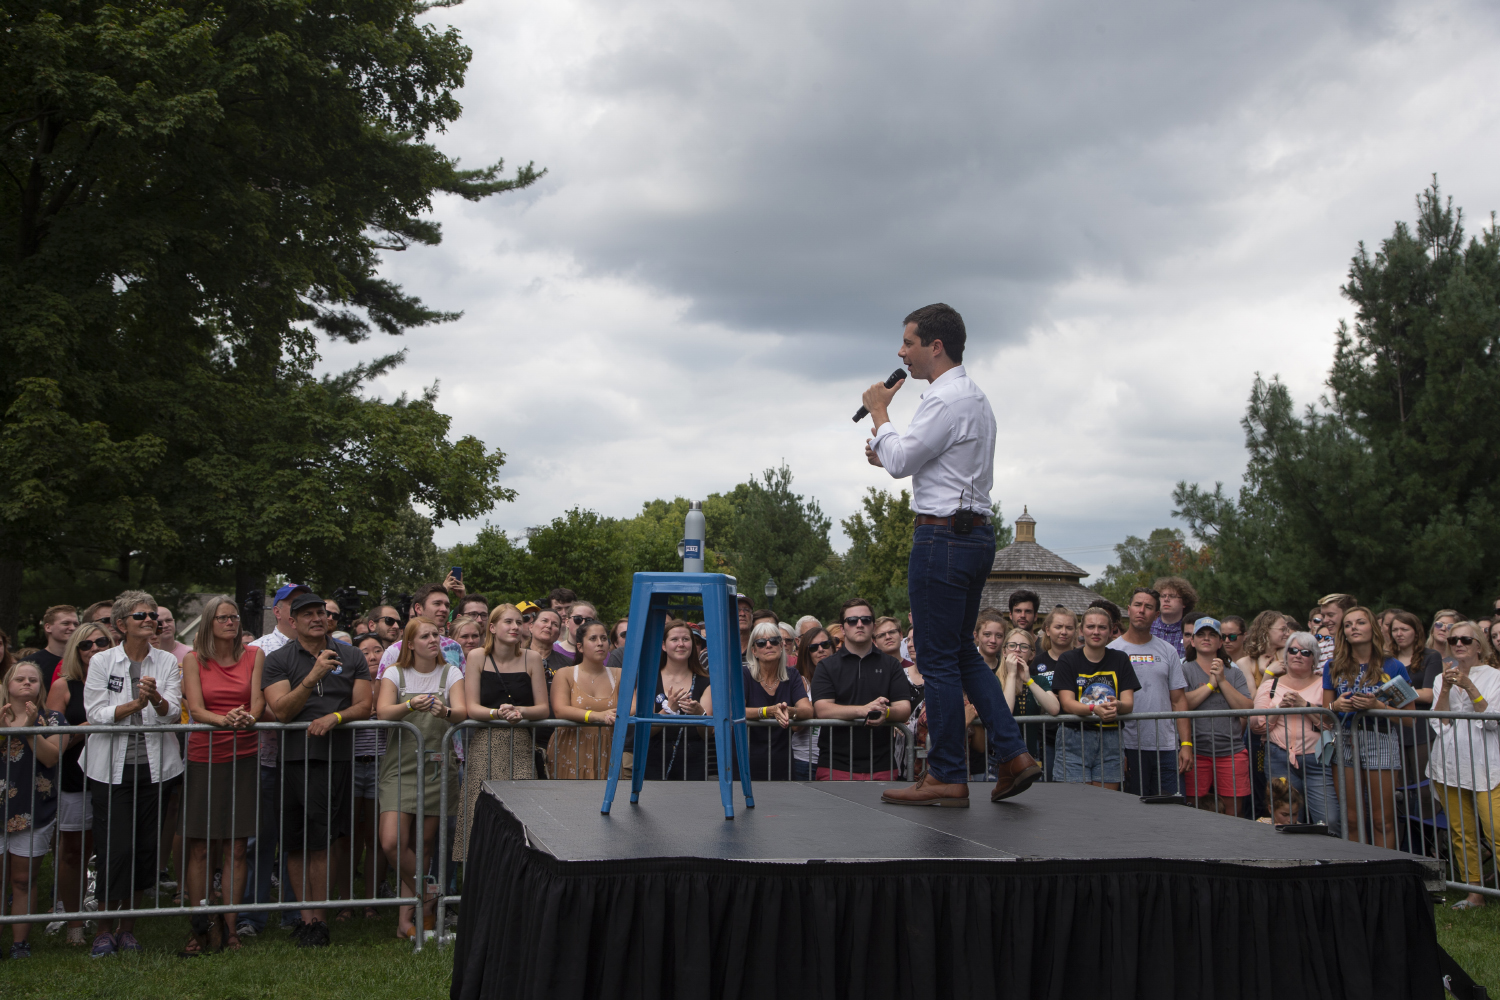 2020+Democratic+candidate+Pete+Buttigieg+addresses+the+crowd+during+a+lawn+event+to+celebrate+opening+his+new+campaign+office+in+downtown+Iowa+City+on+September+2%2C+2019.